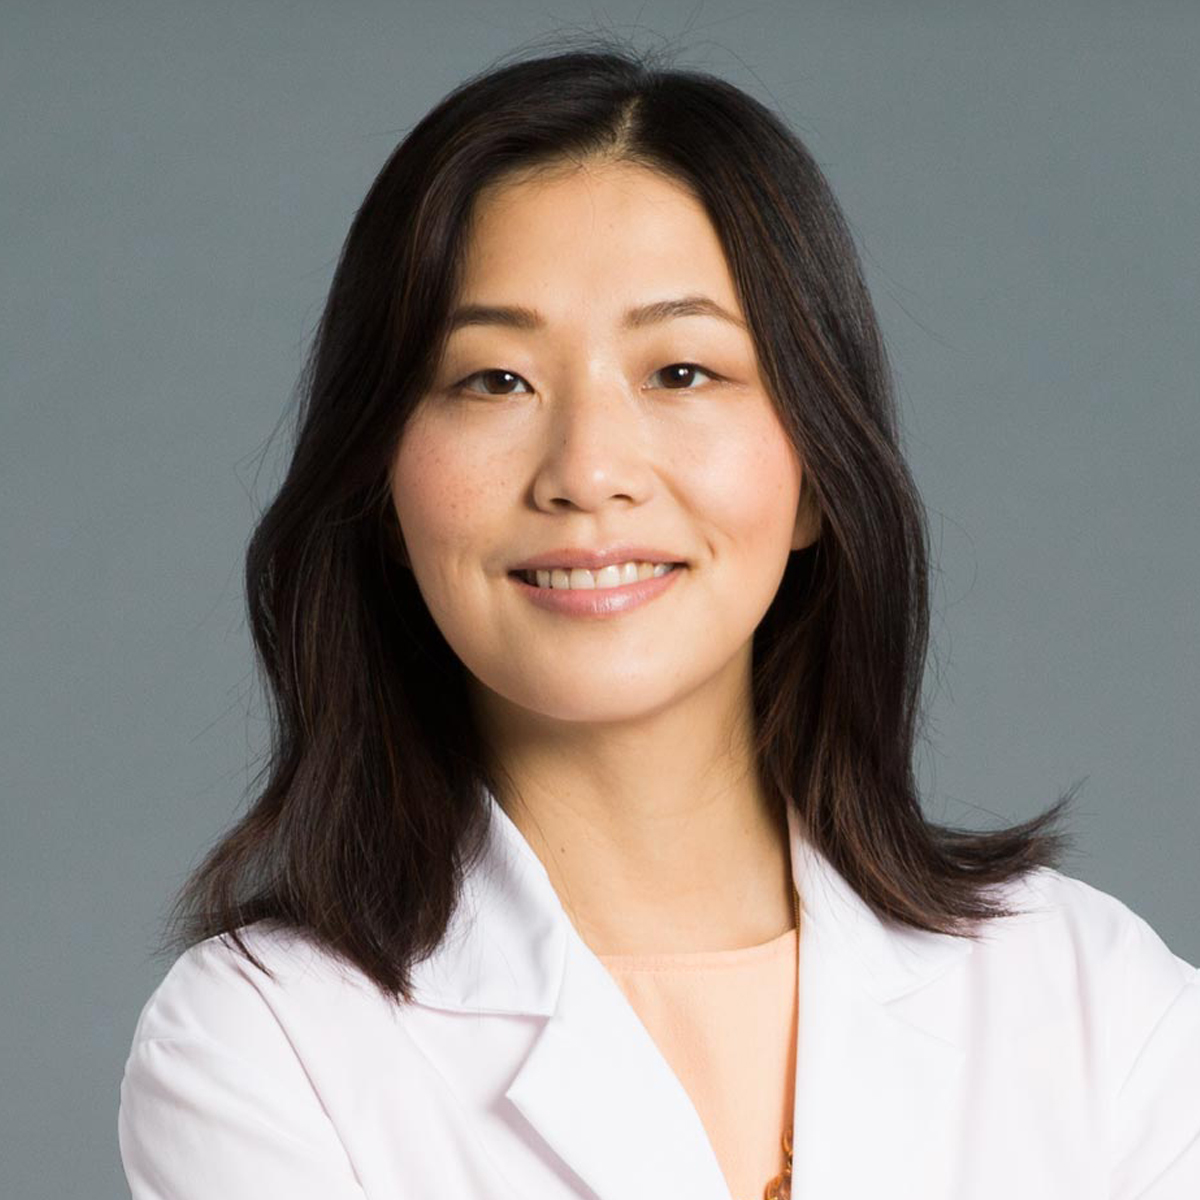 Eleanore Kim at [NYU Langone Medical Center]